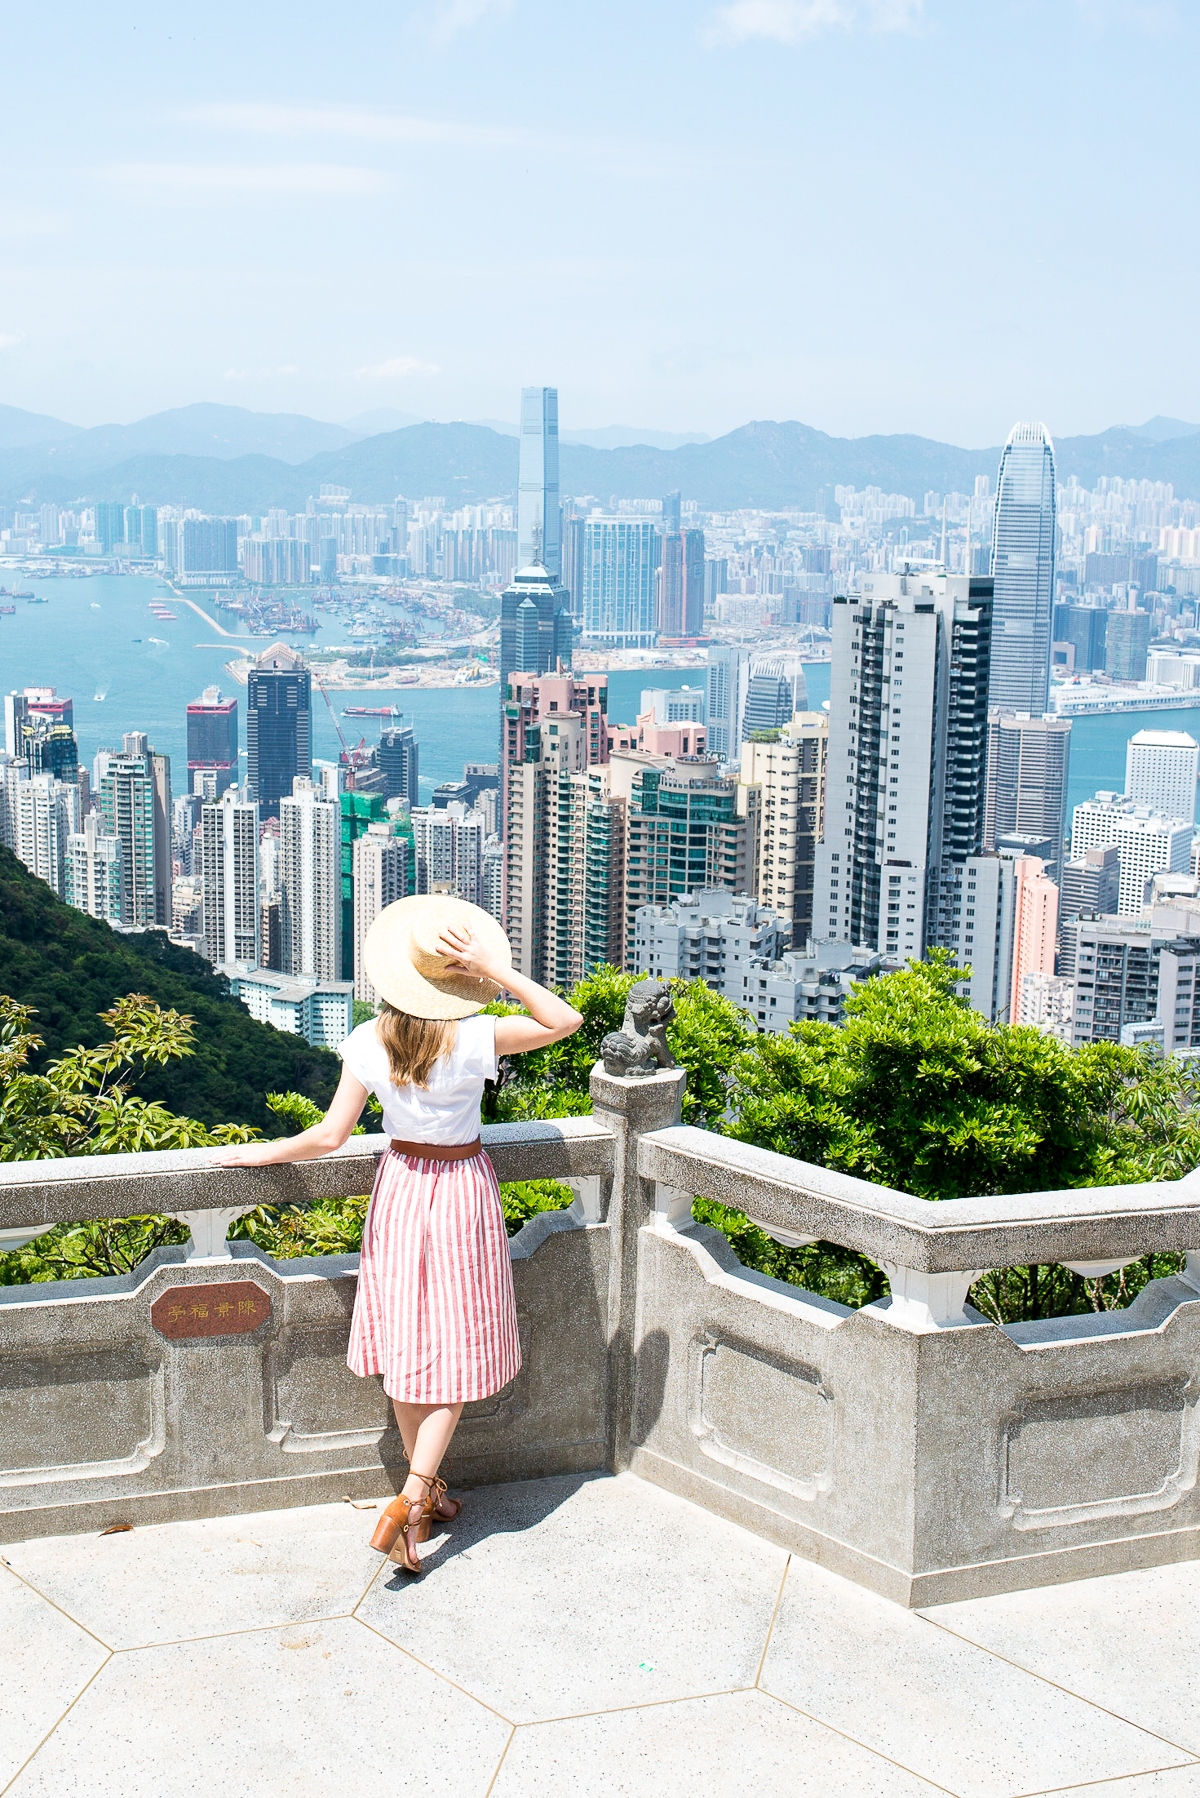 Stacie Flinner Top 10 Things to do Hong Kong-68.jpg